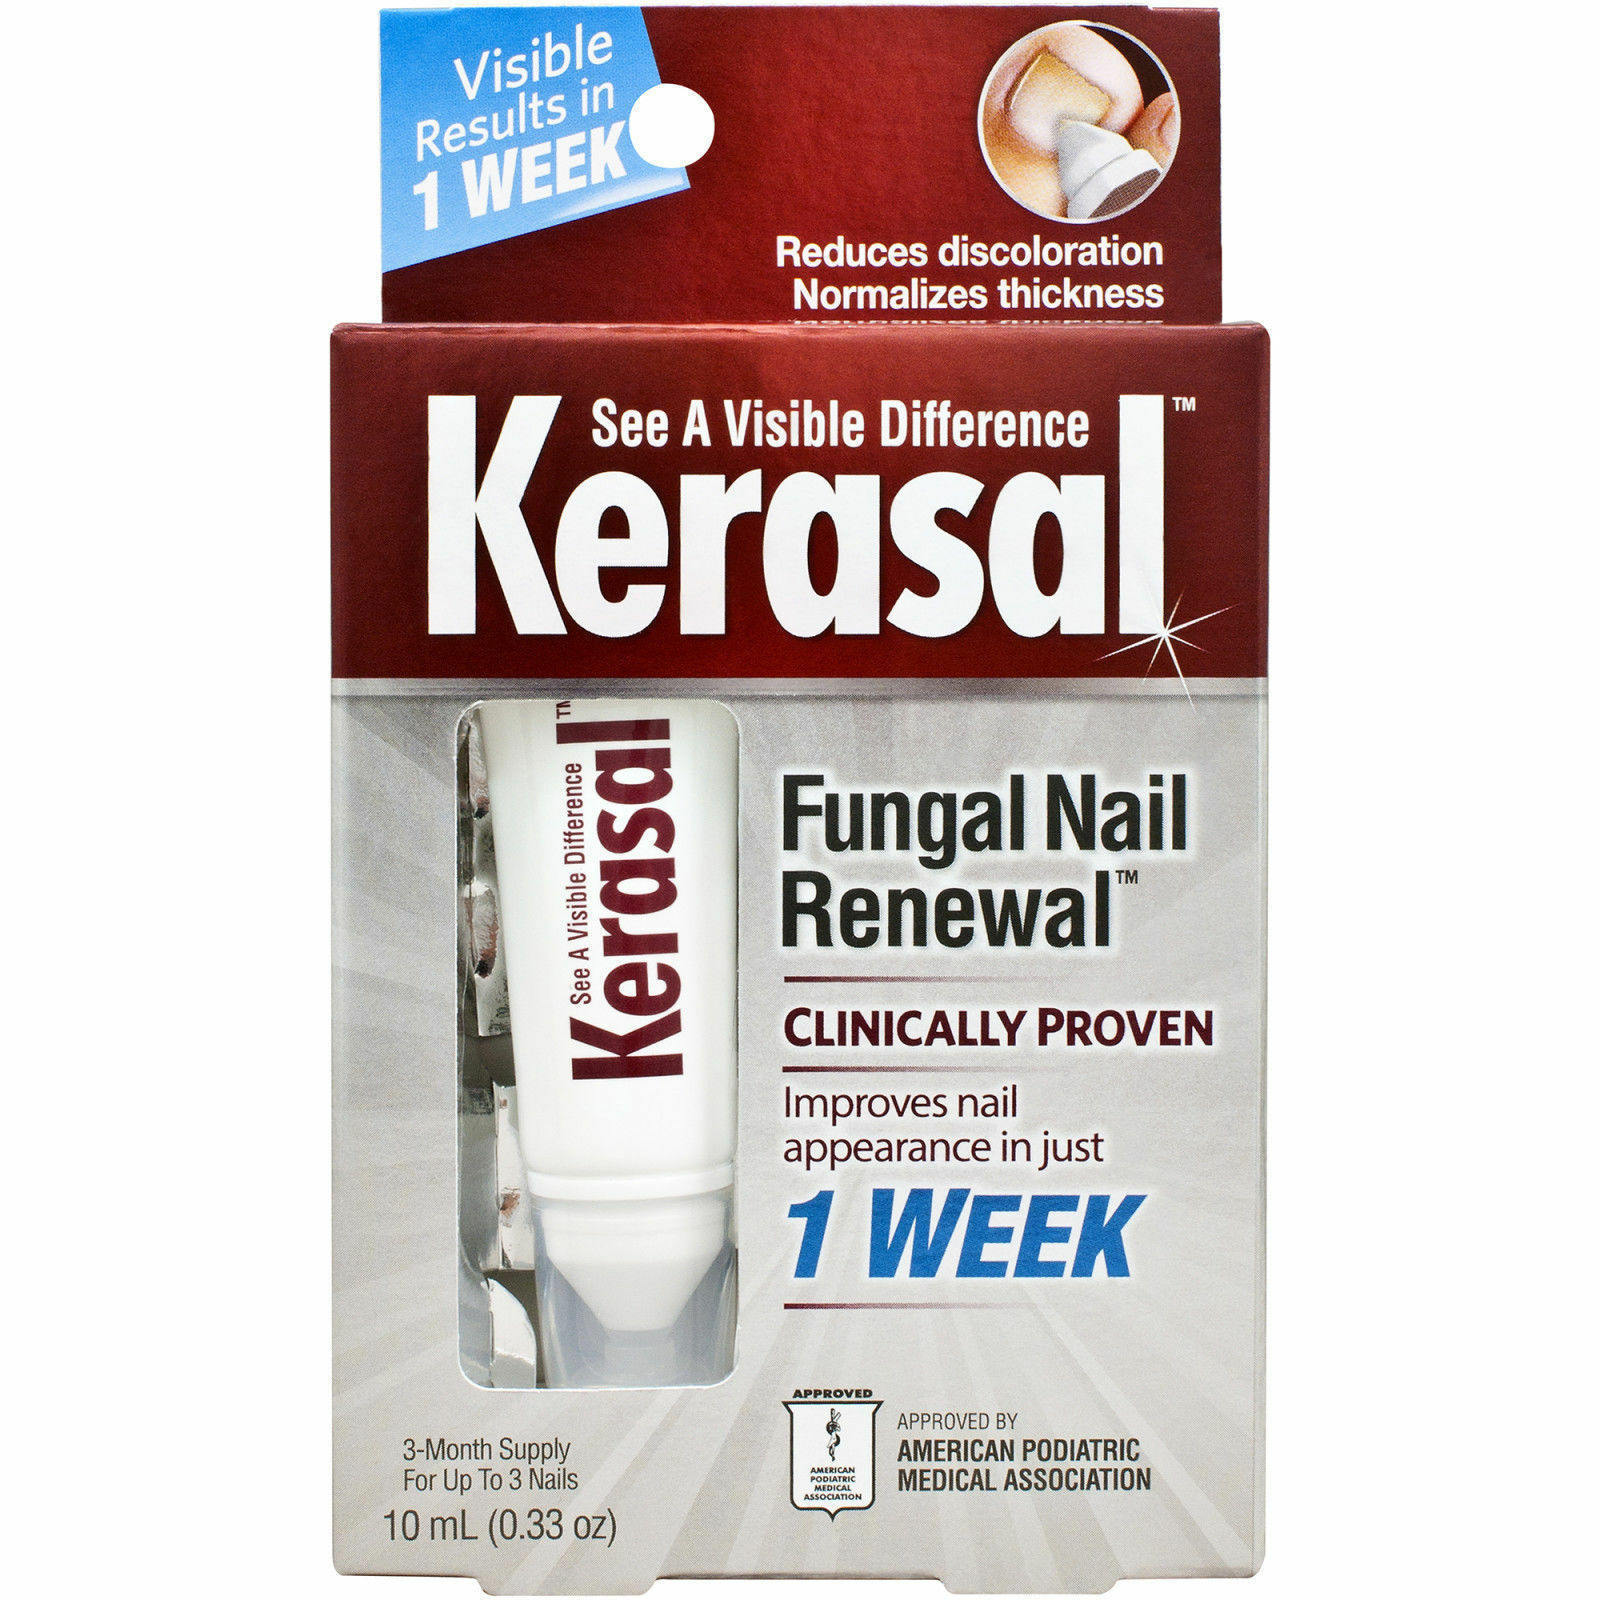 Kerasal Fungal Nail Renewal Treatment 10ml | eBay